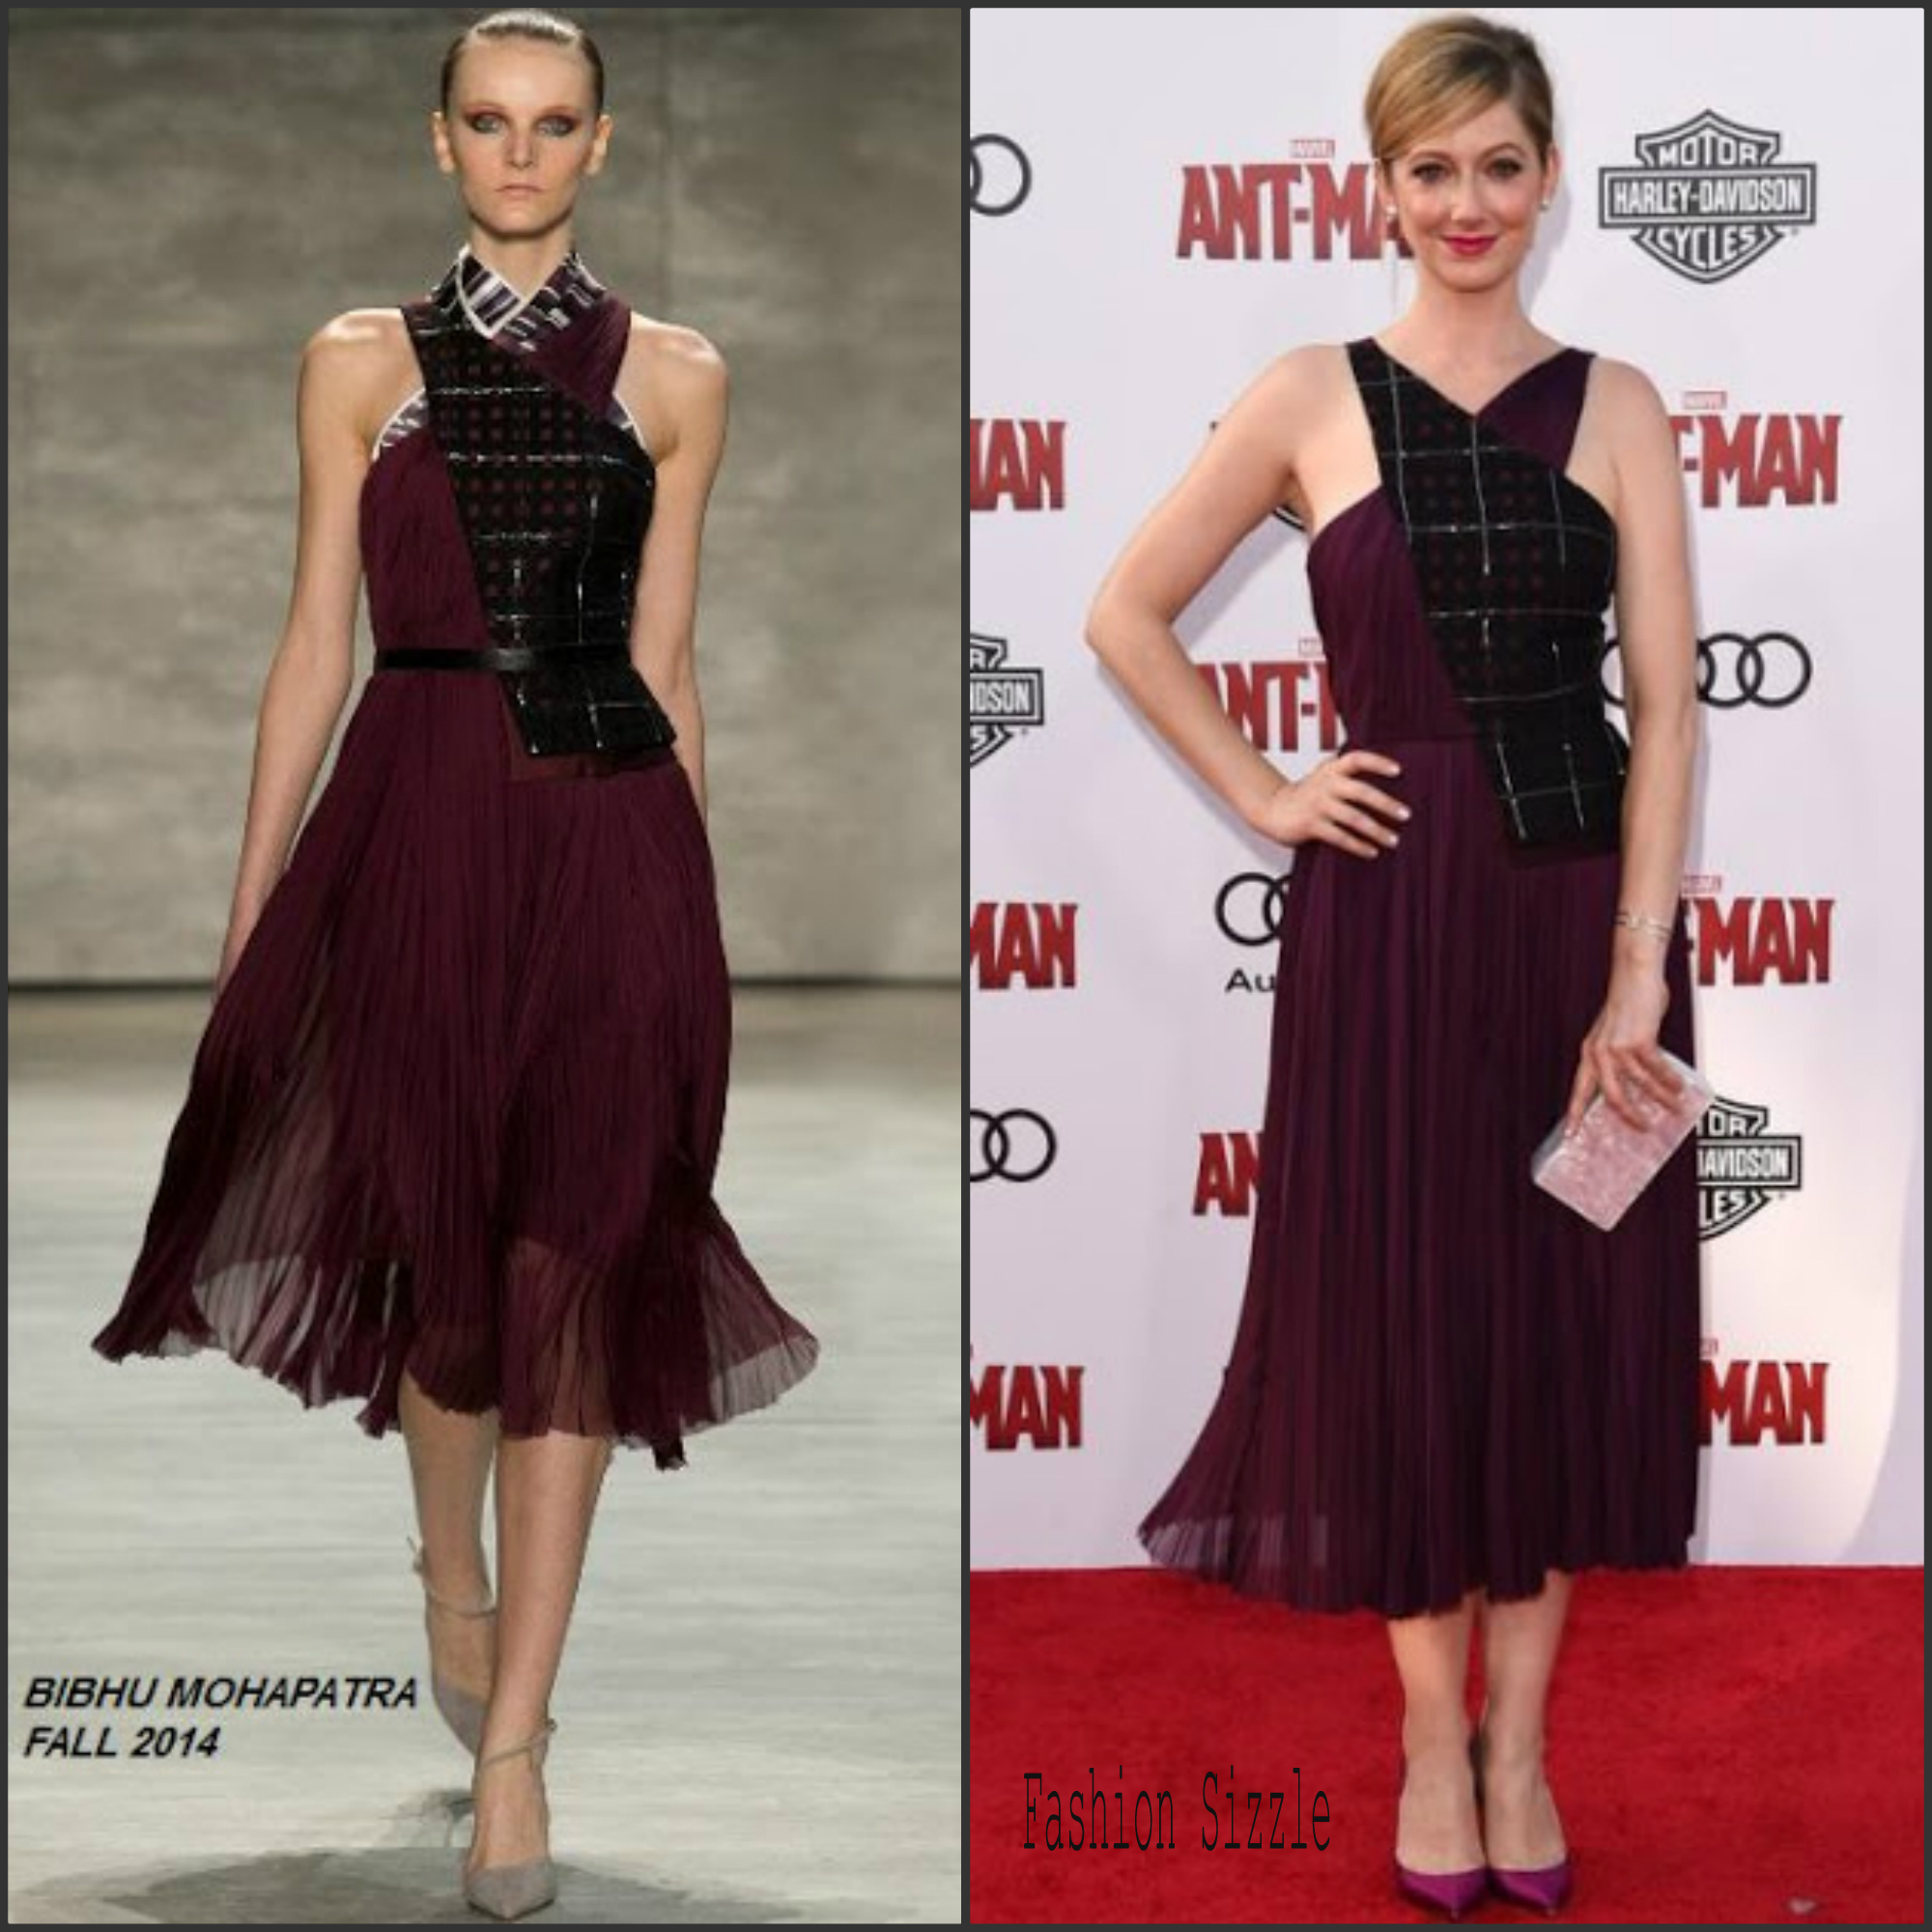 judy-greer-in-bibhu-mohapatra-at-ant-man-la-premiere